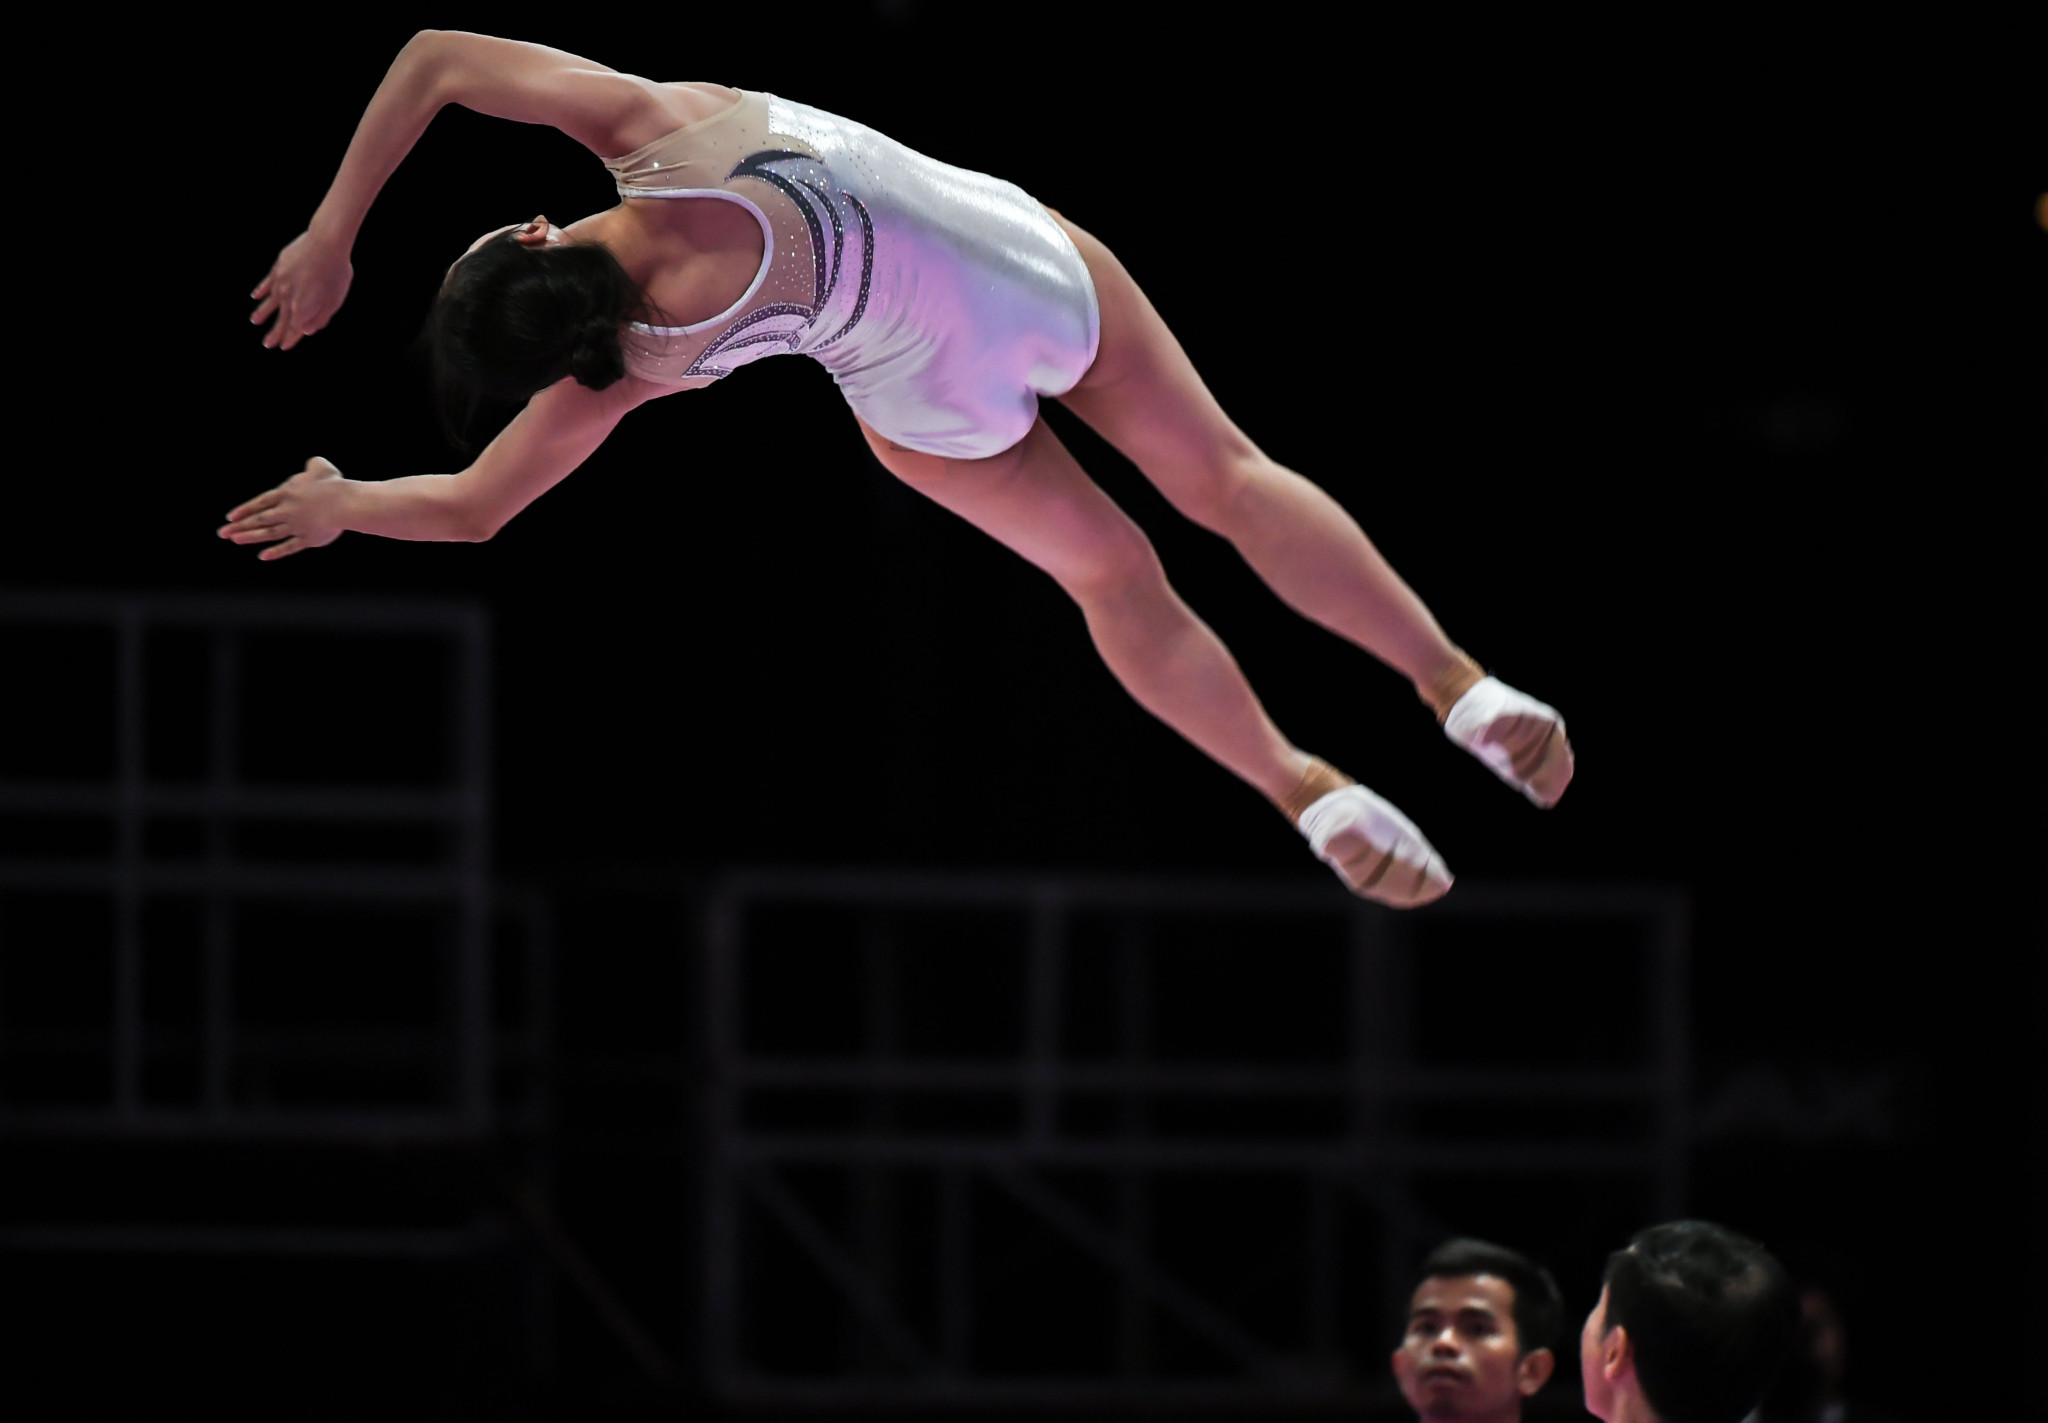 China's Liu Lingling triumphed in the woman's event at the FIG Trampoline World Cup in Baku ©Getty Images